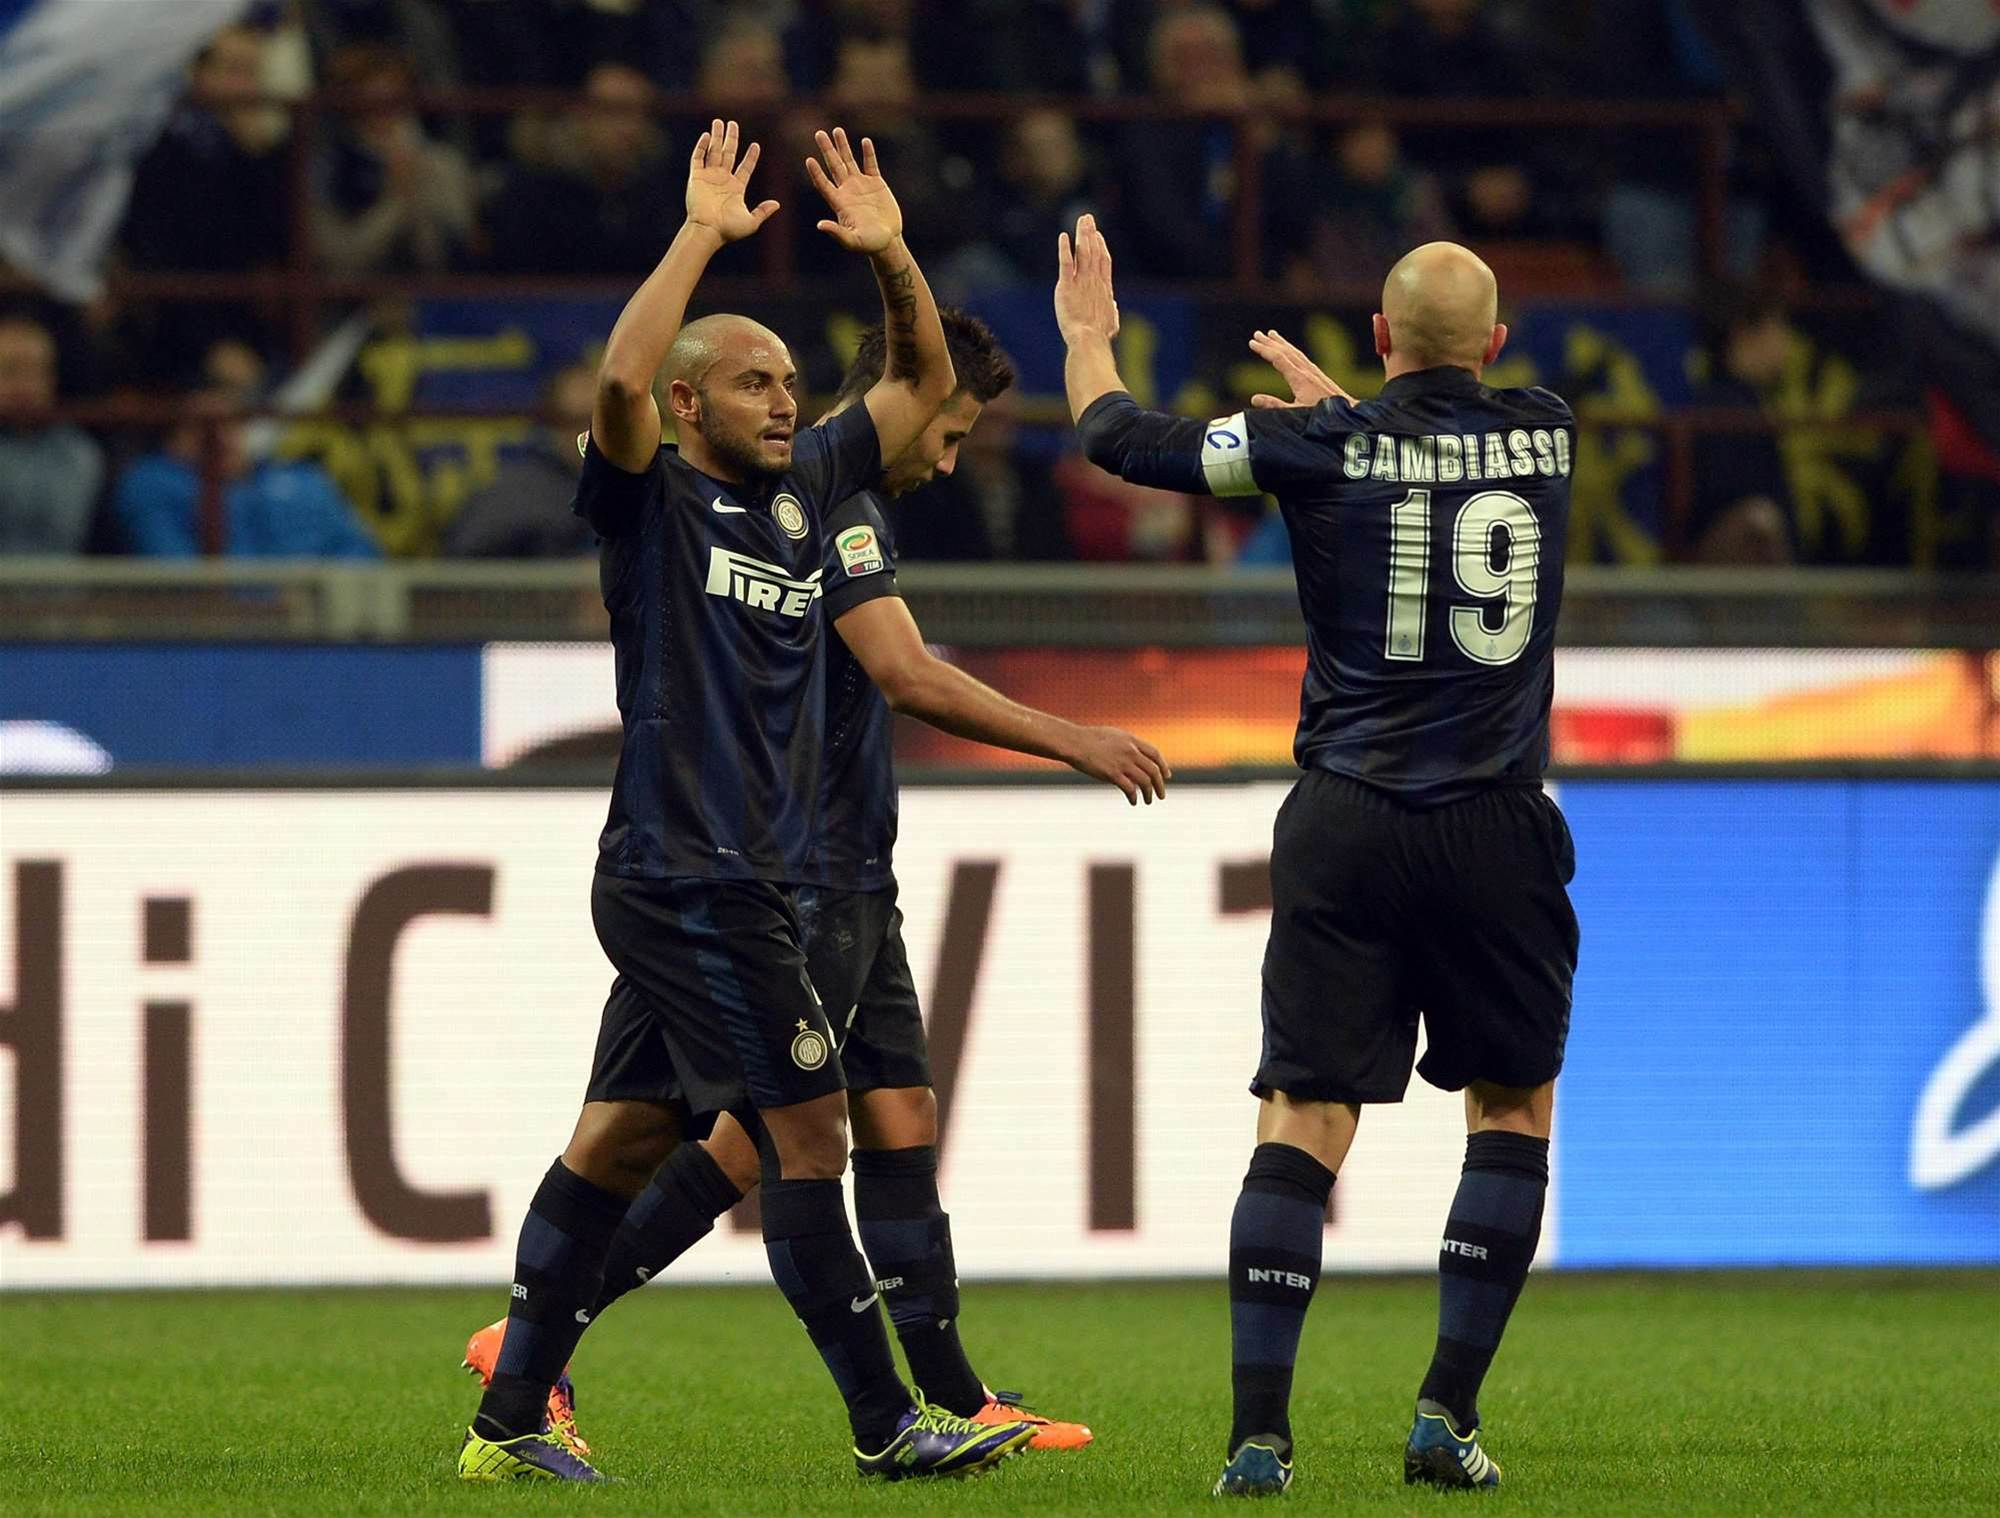 Inter cruise, Catania claim second win